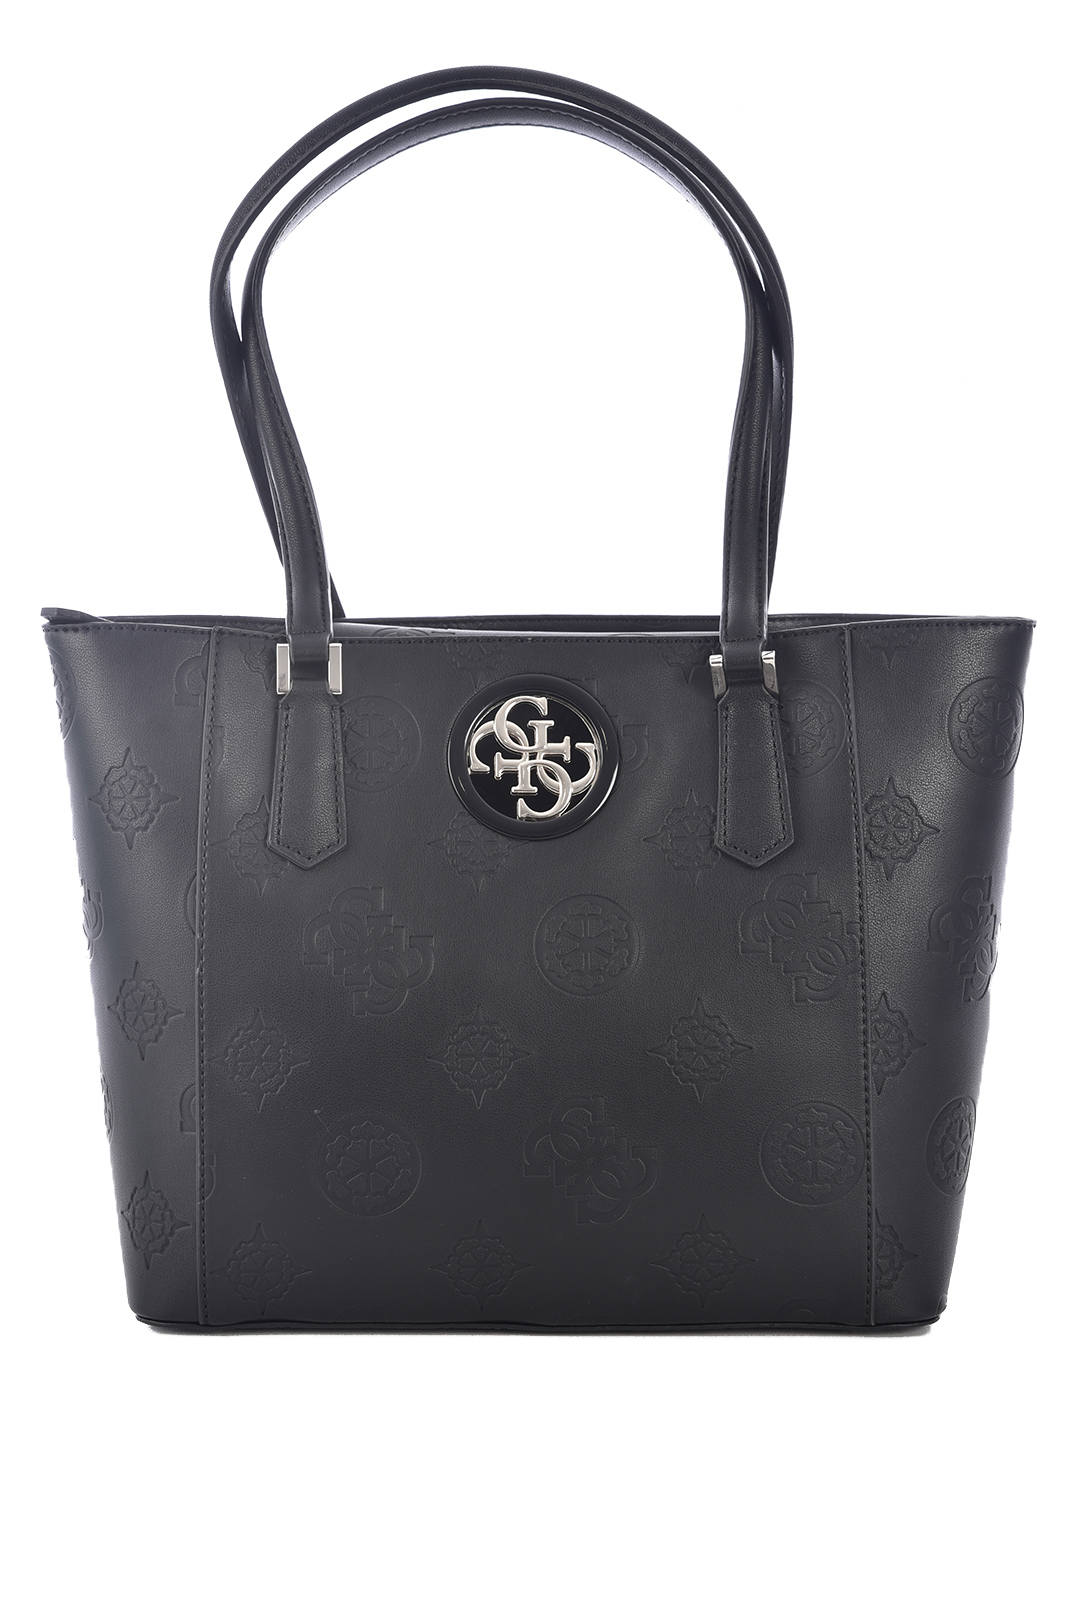 Cabas / Sacs shopping  Guess jeans HWSL71 86240 Open road BLACK